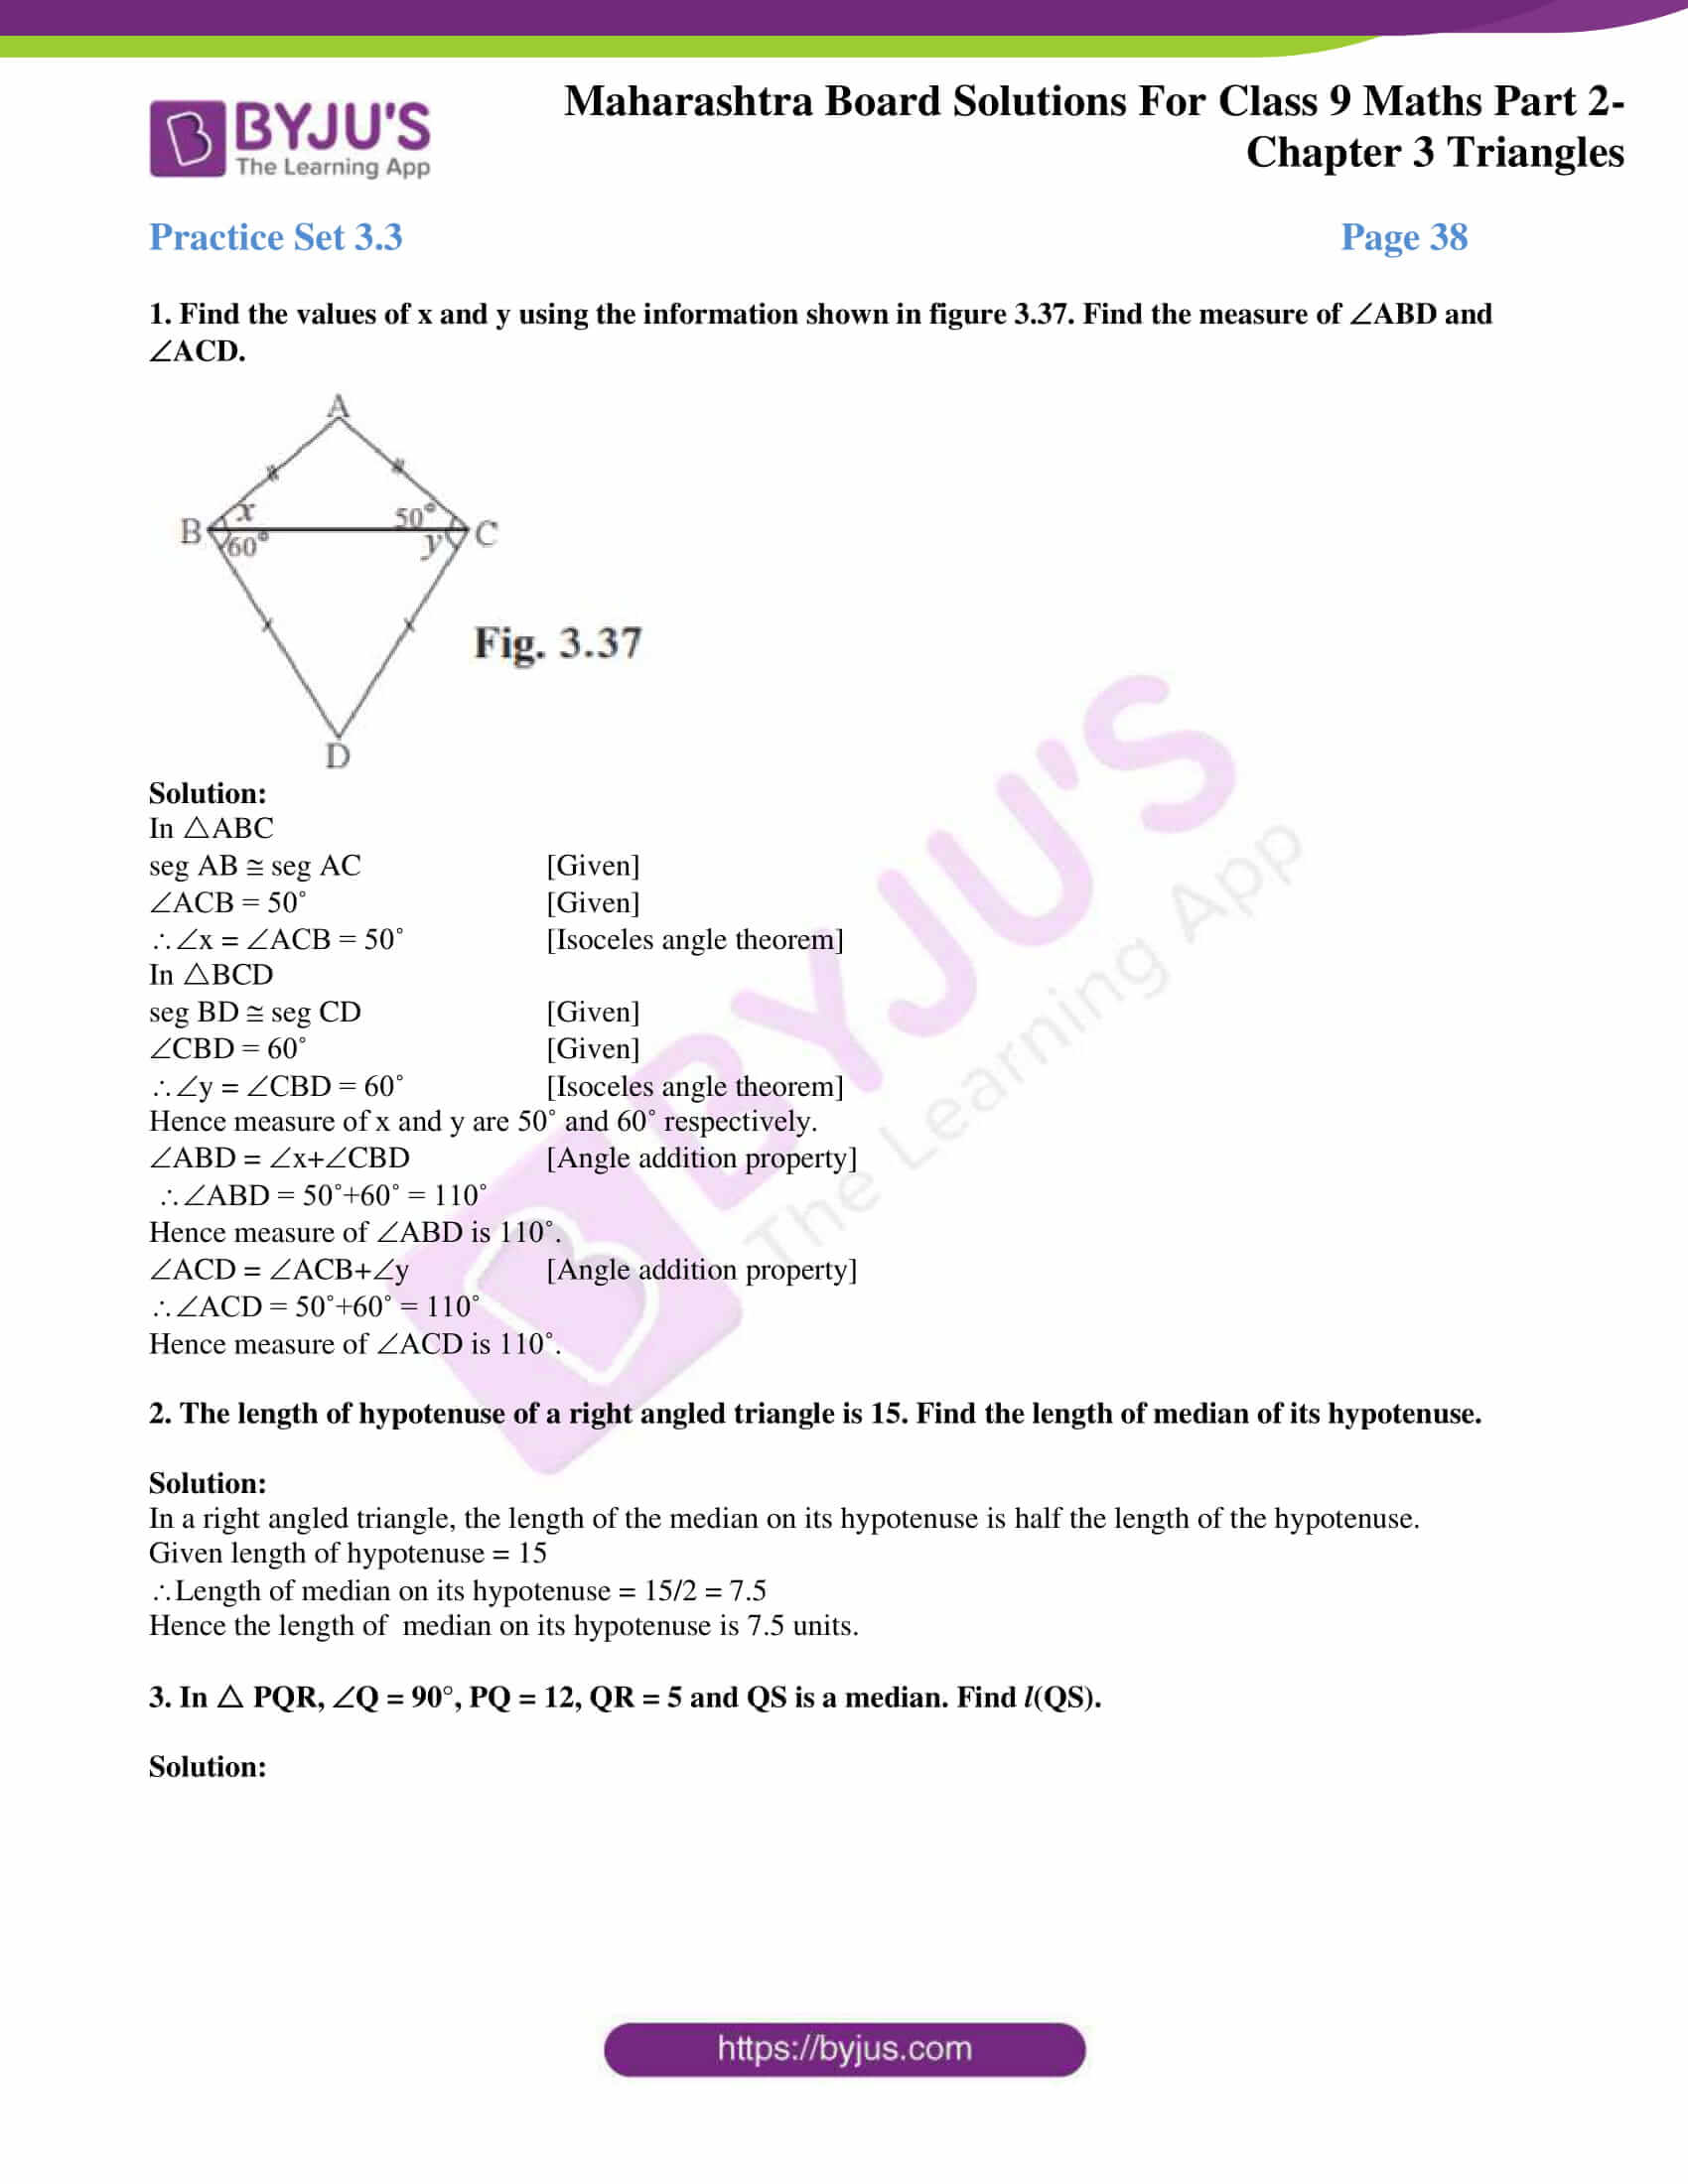 msbshse solutions for class 9 maths part 2 chapter 3 11